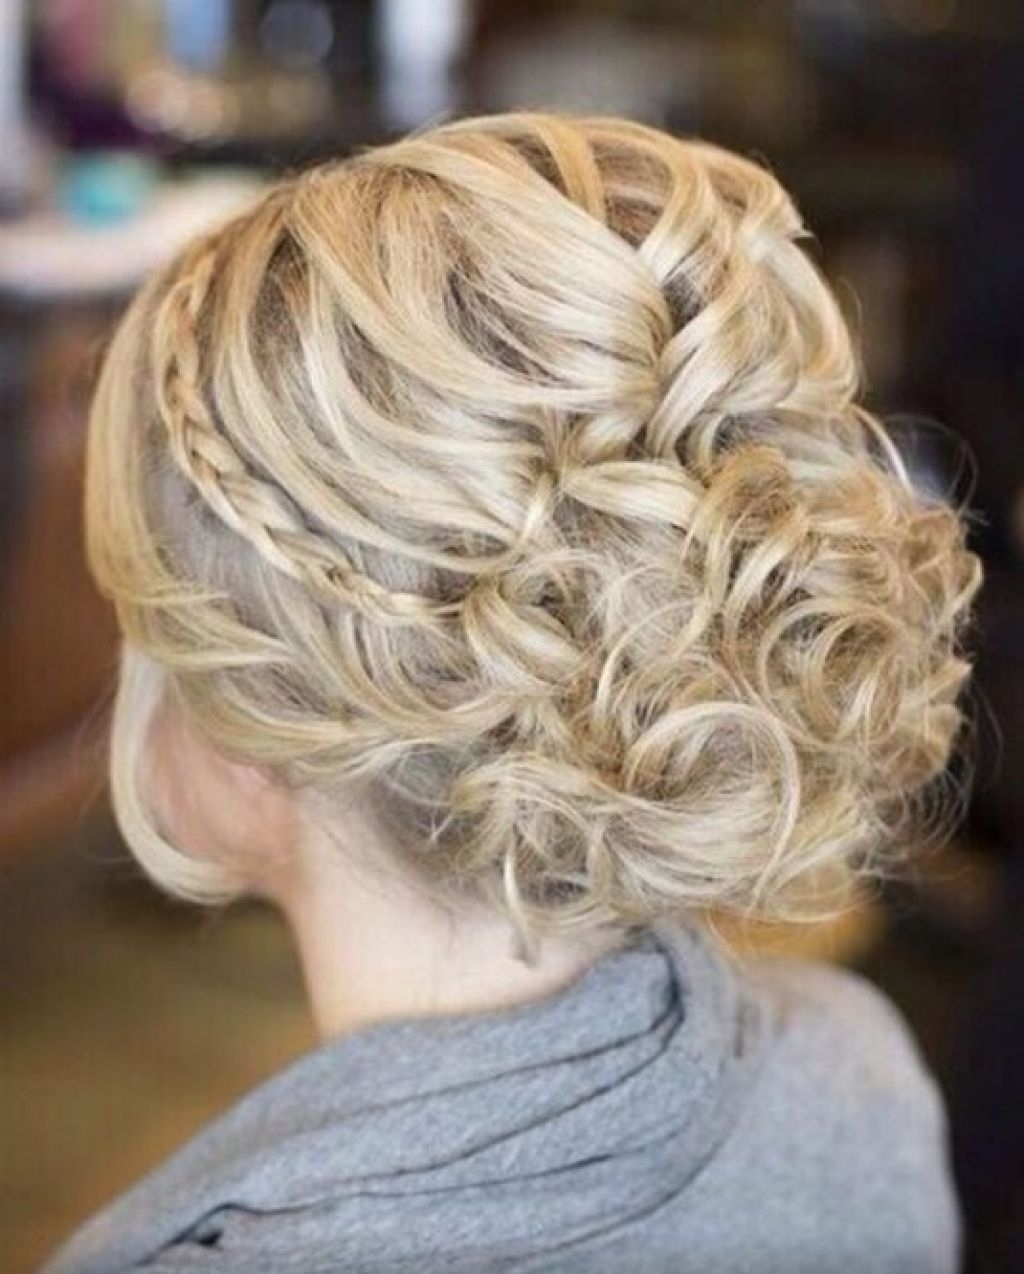 Hair Messy Braided Updo Hairstyle For Prom Within Long Formal Updo Hairstyles (View 8 of 15)